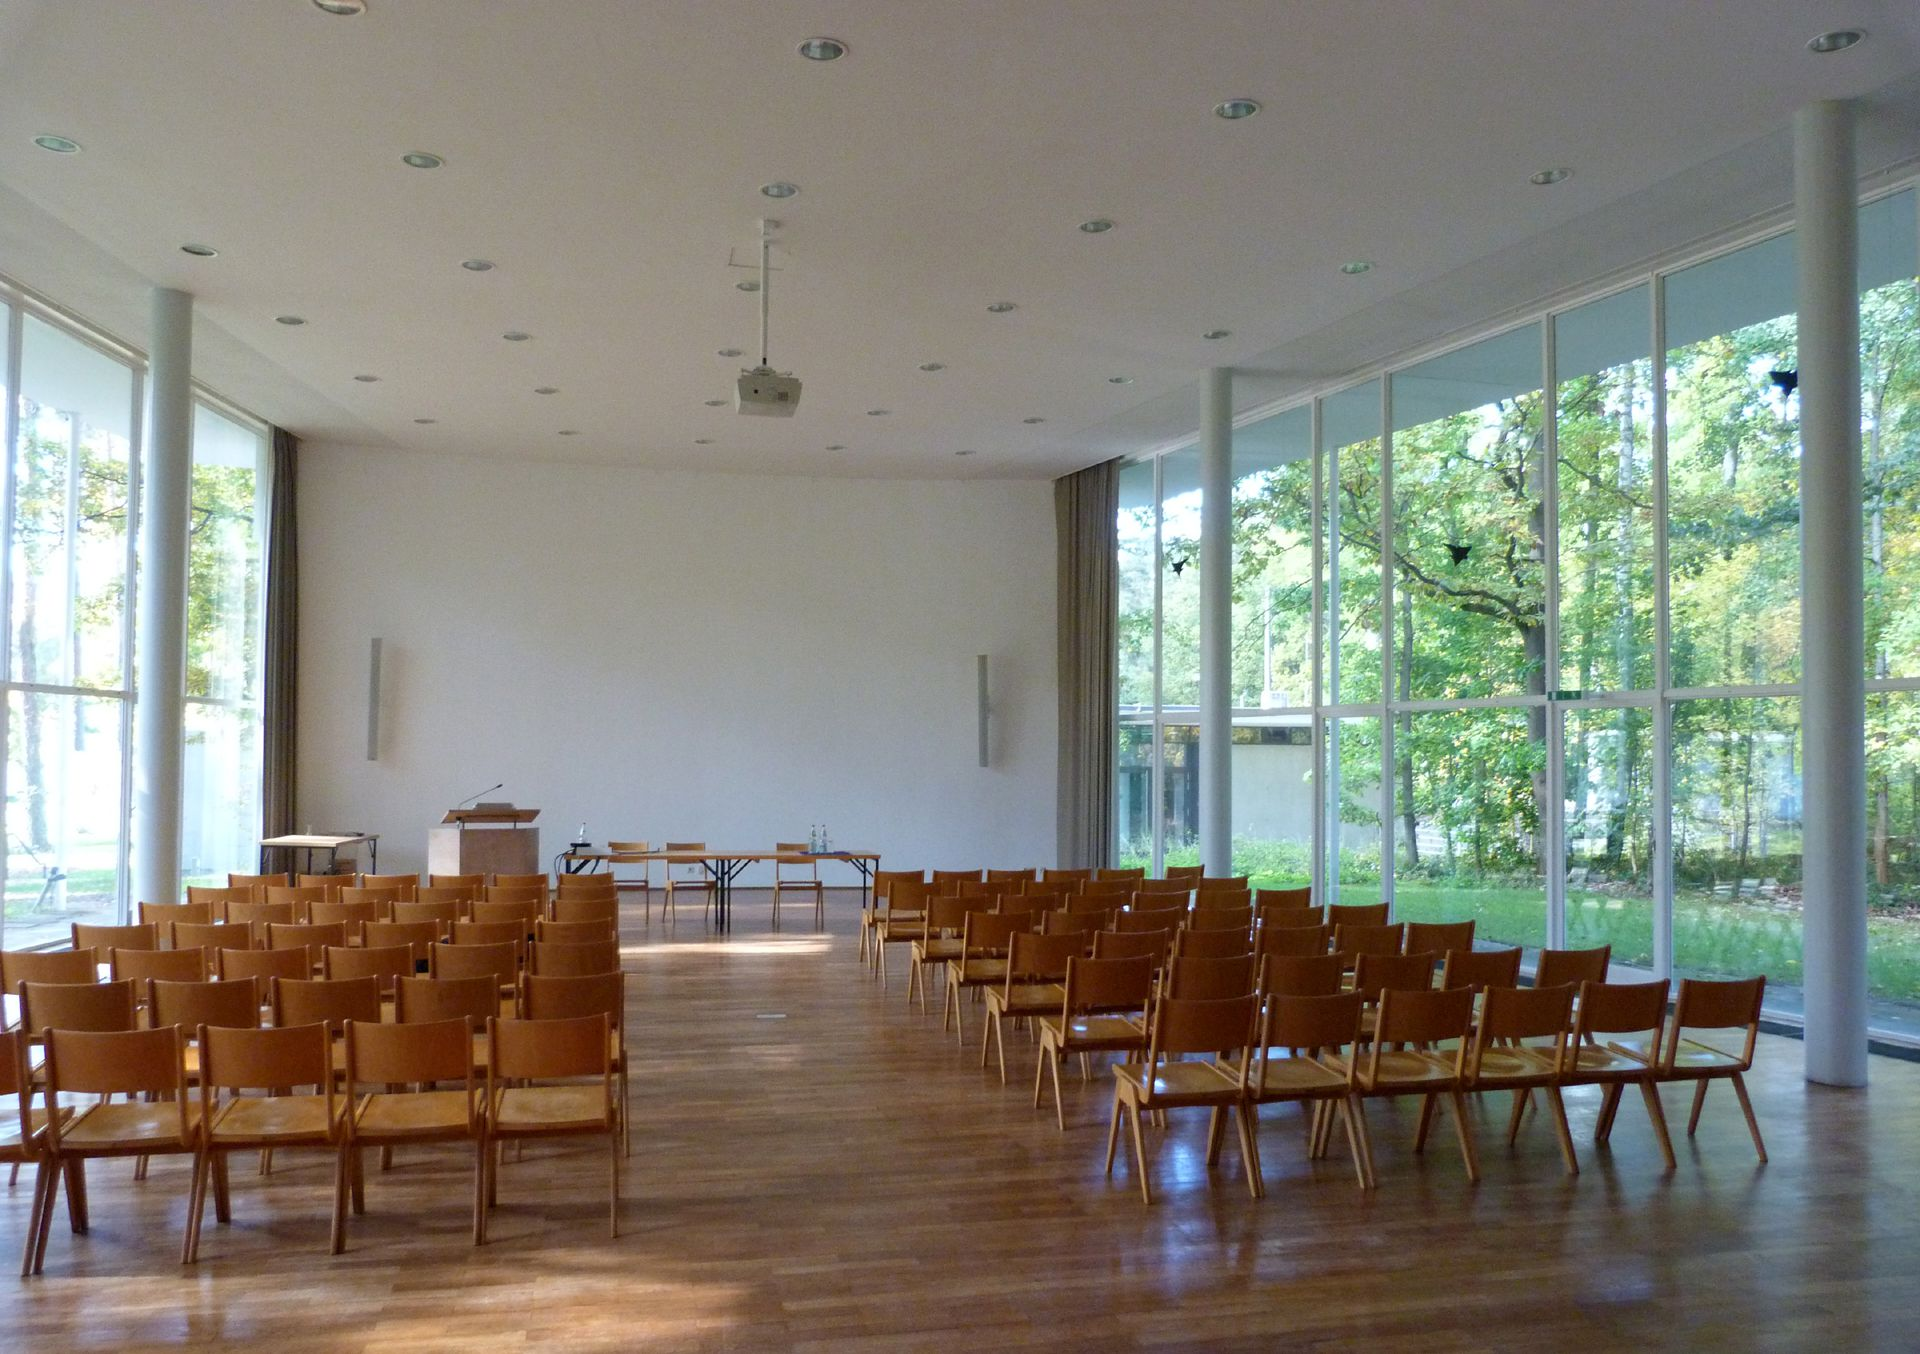 Academy of Fine Arts Lecture hall